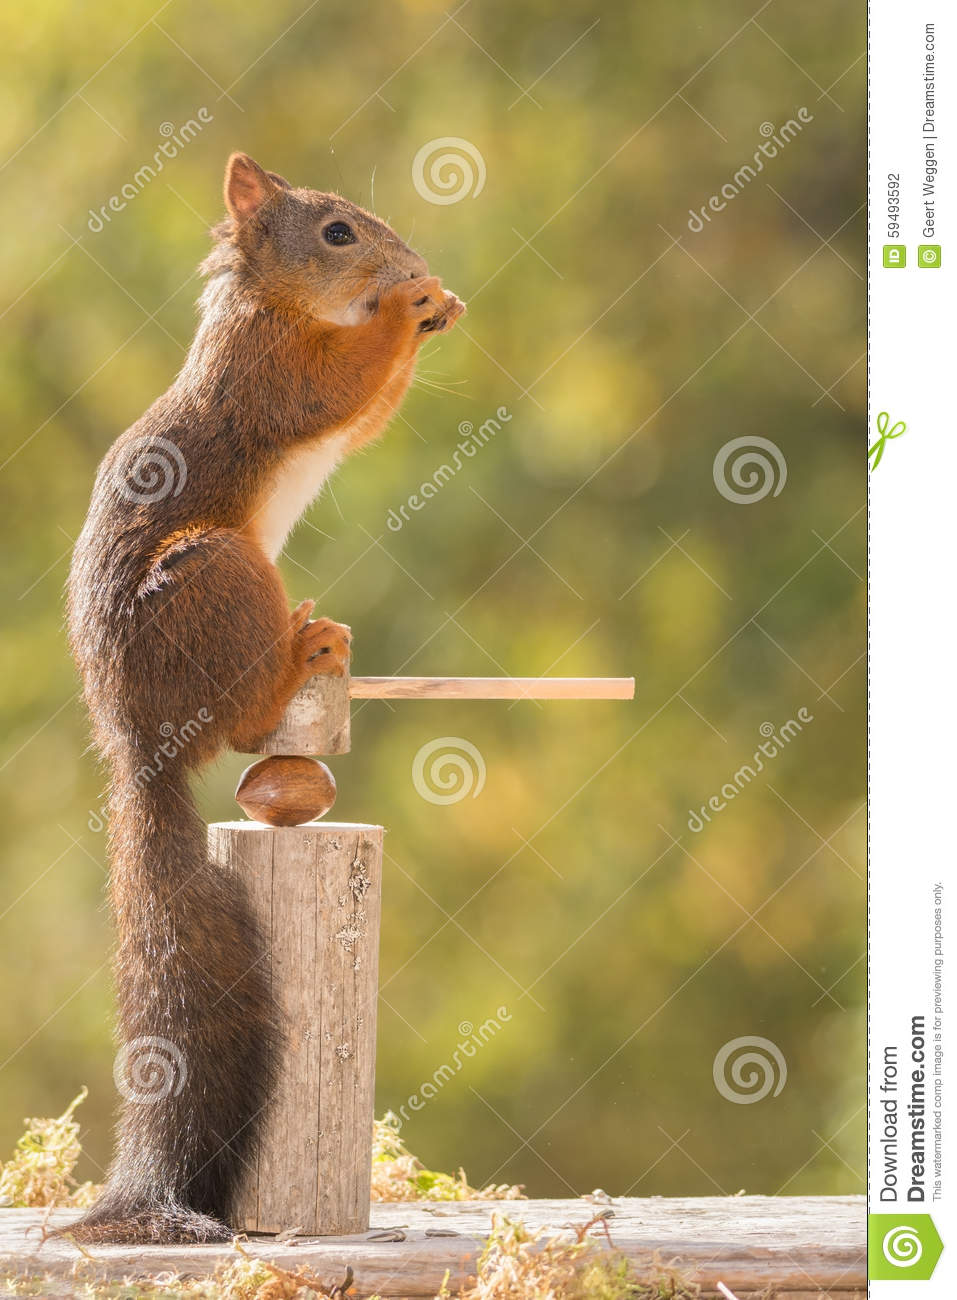 Sitting job stock photo image 59493592 Nutcracker squirrel